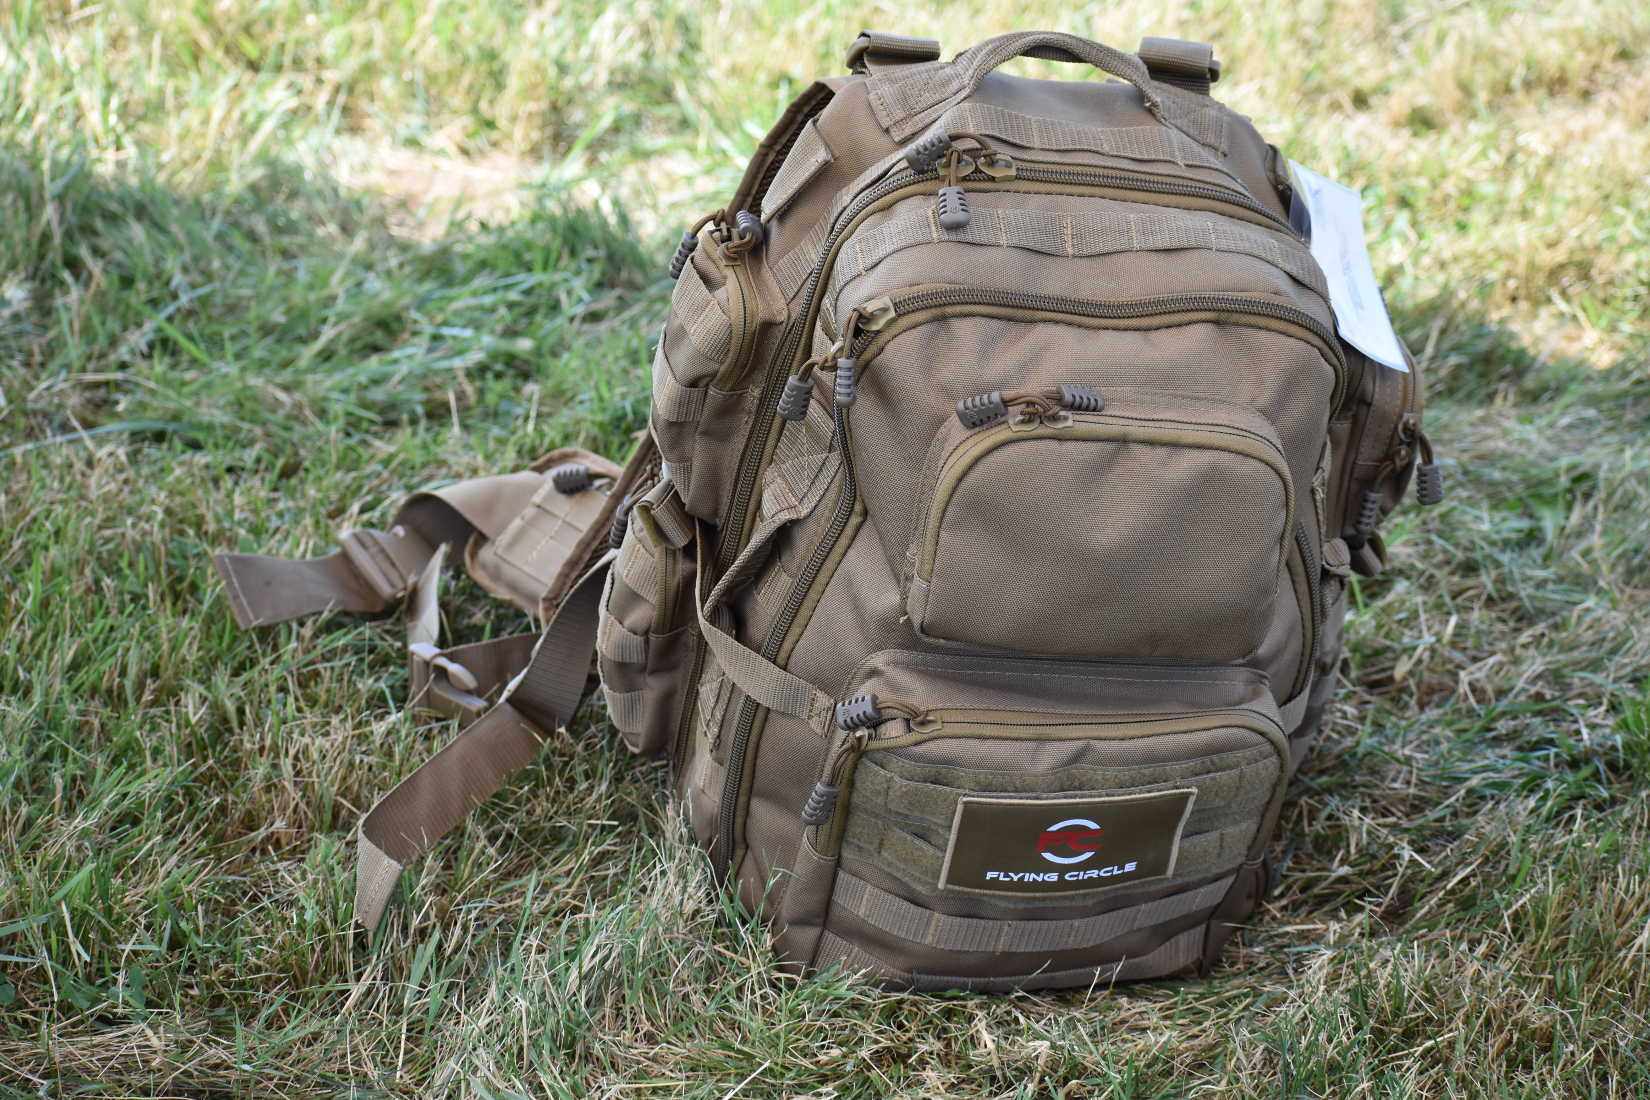 Product Review: Flying Circle Brazos Pack